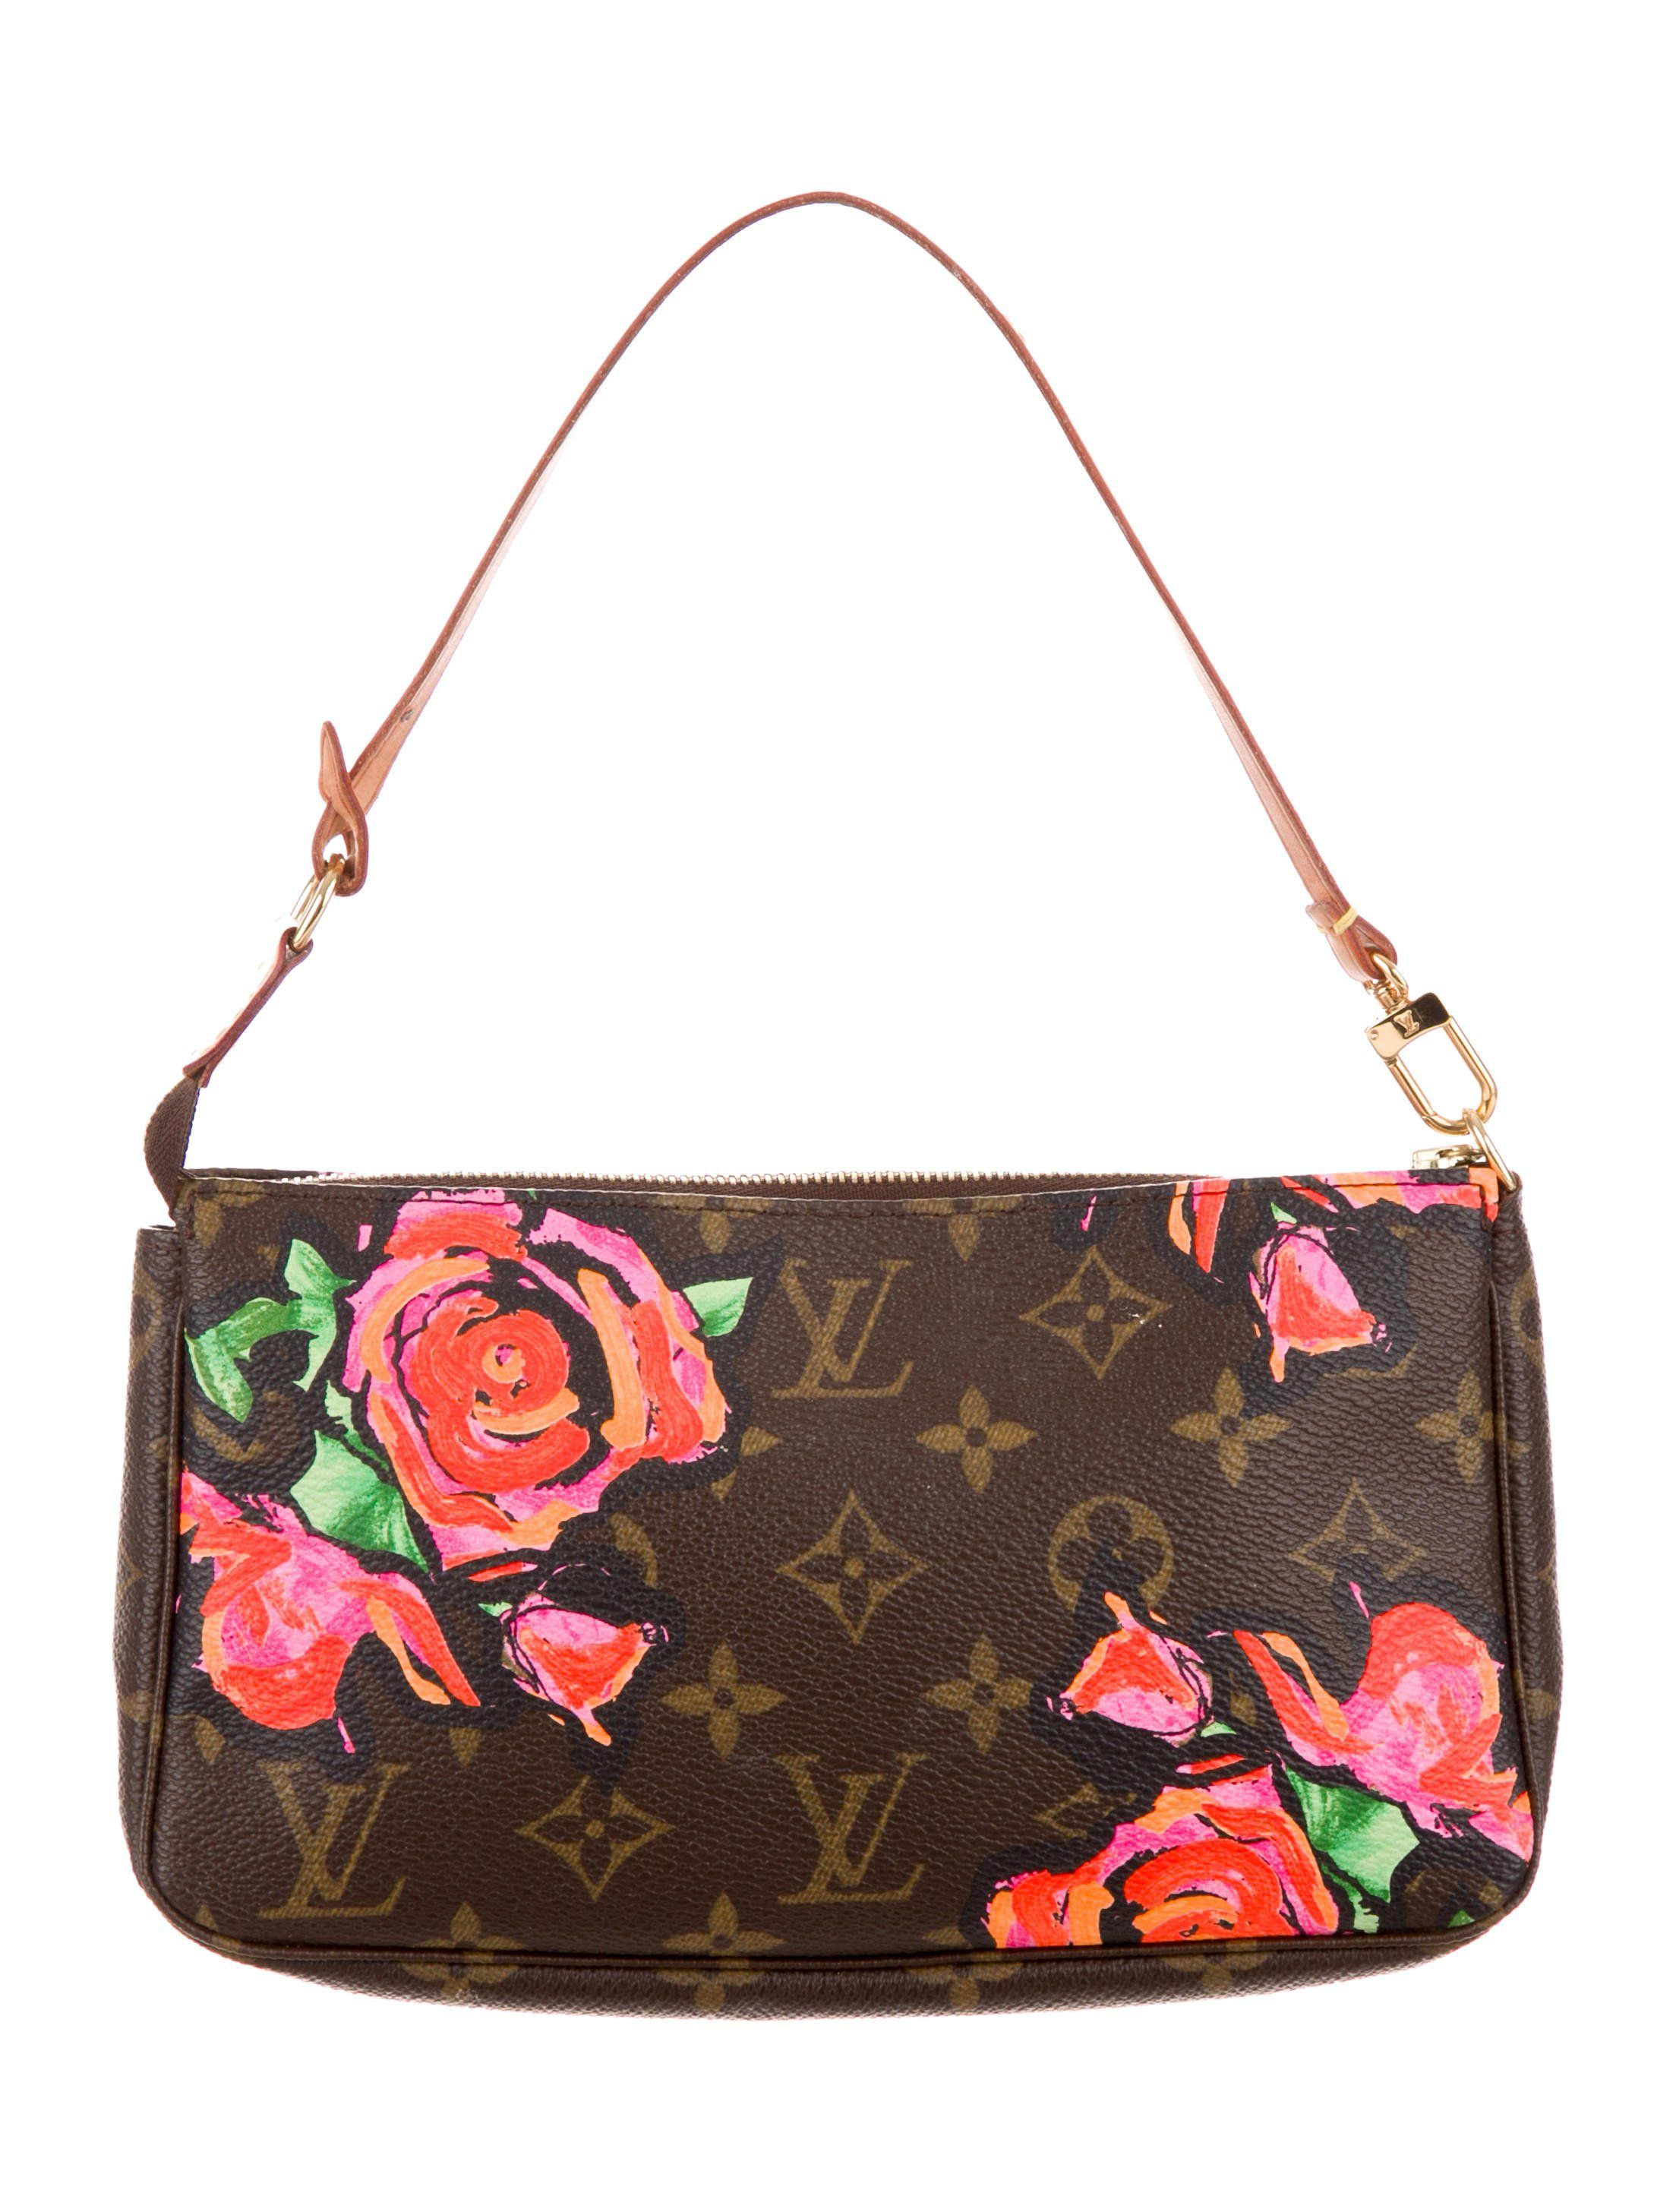 1eb657796659 From the Stephen Sprouse Collection. Brown and tan monogram coated canvas Louis  Vuitton Roses Pochette